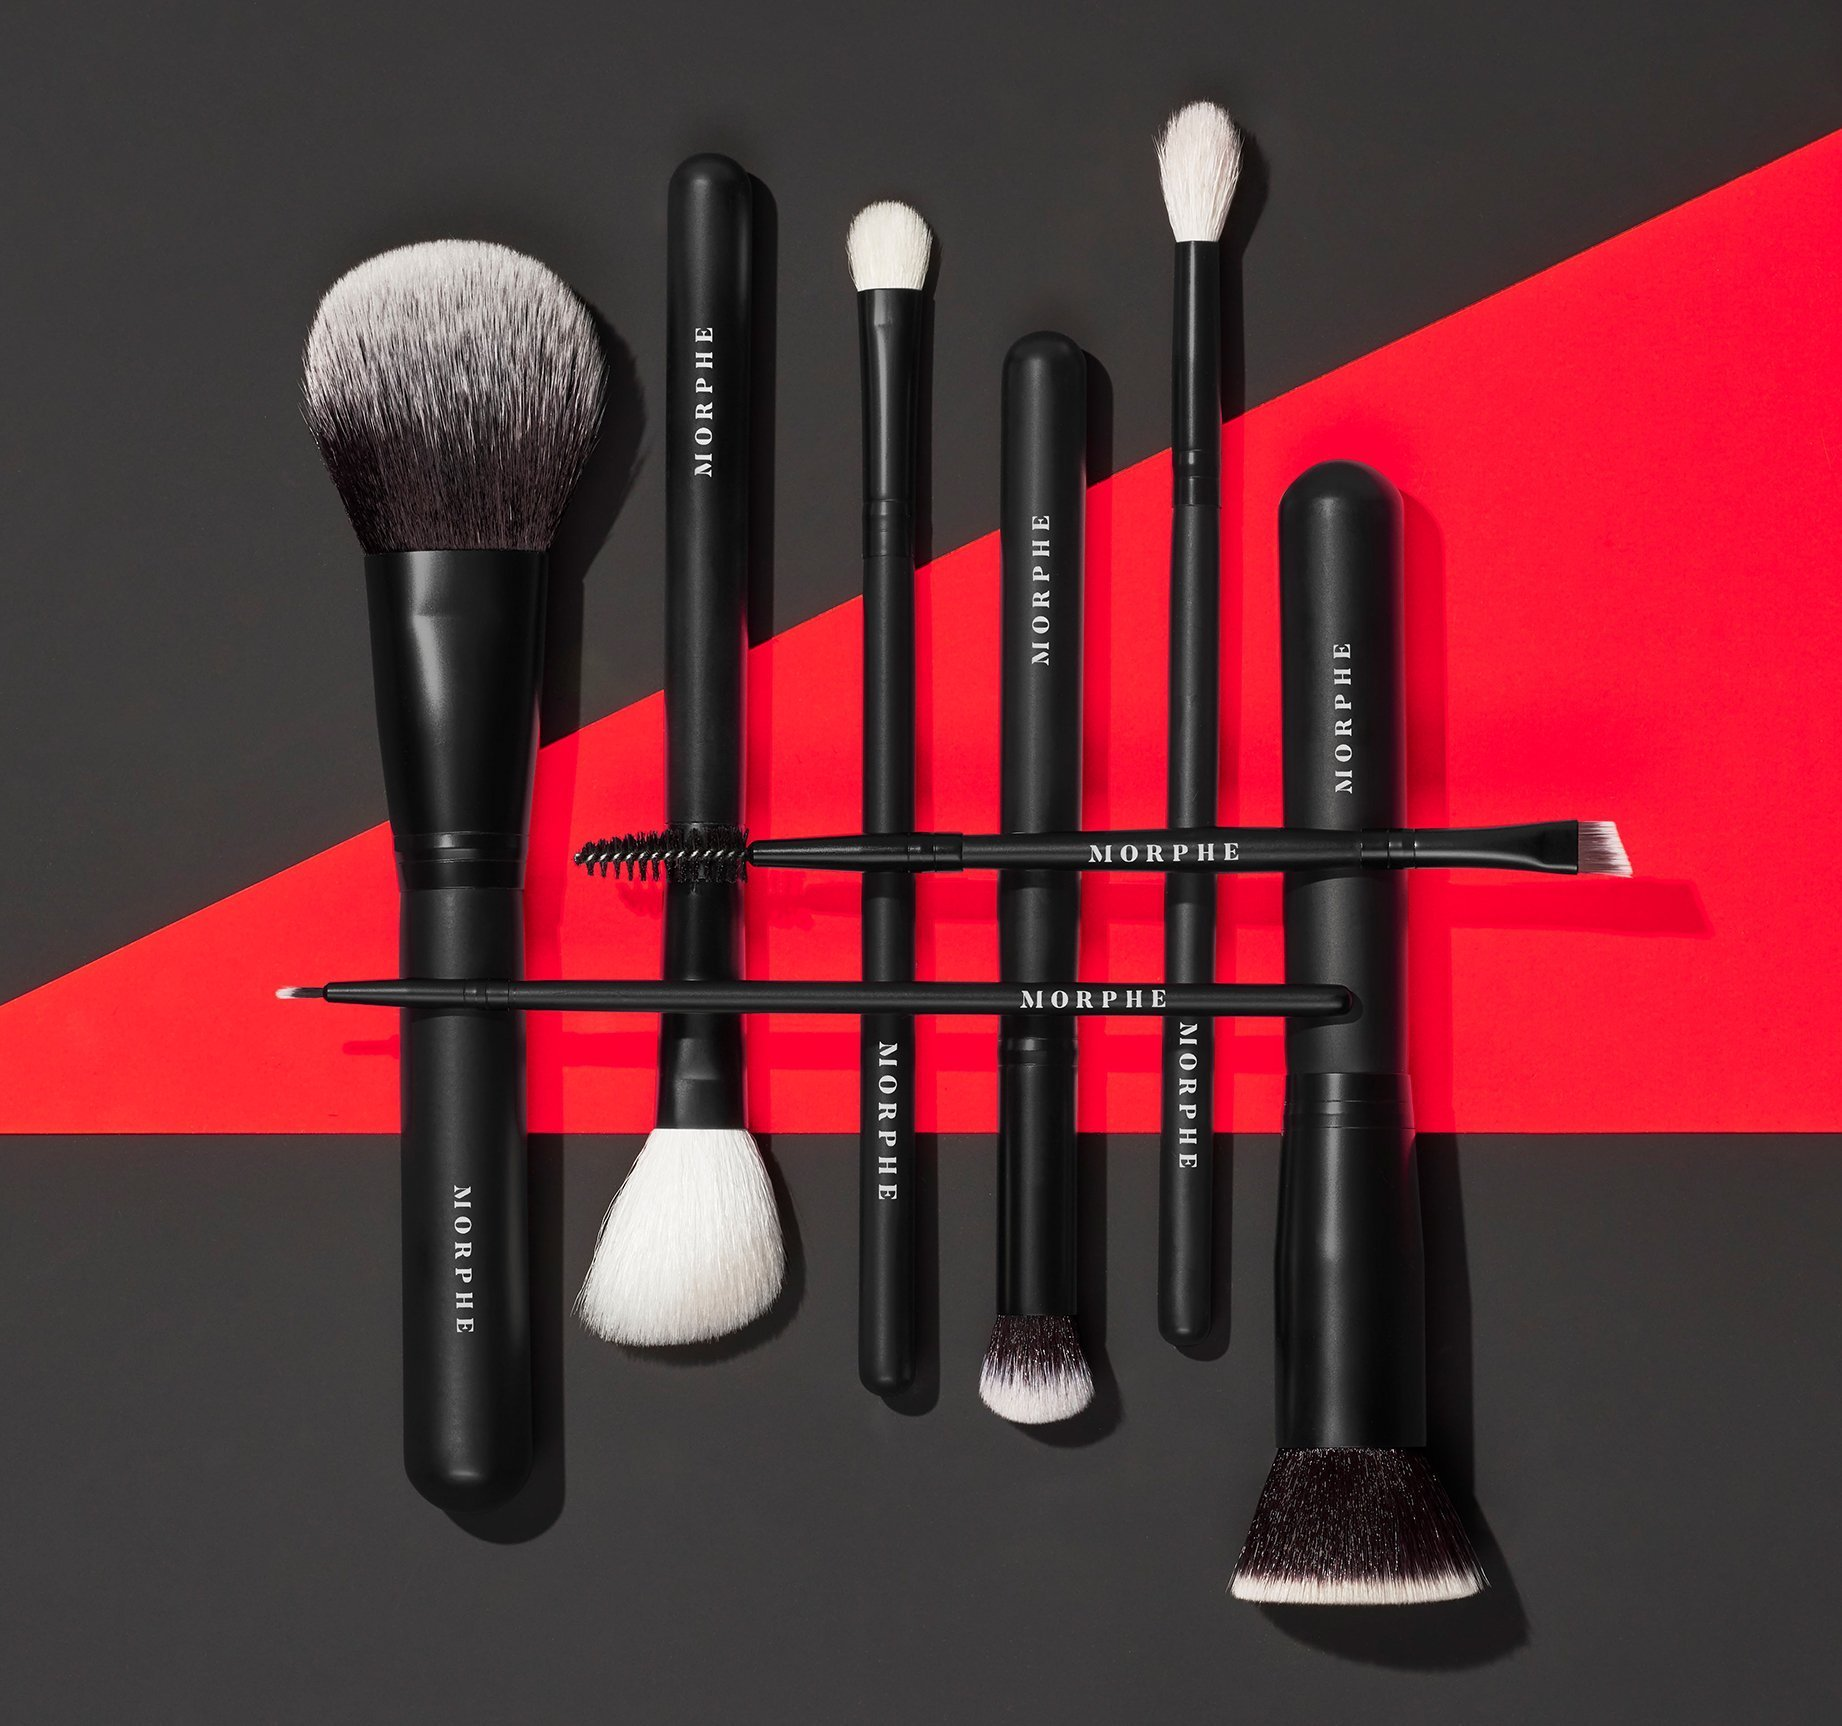 Morphe Get Things Started 8-piece brush set